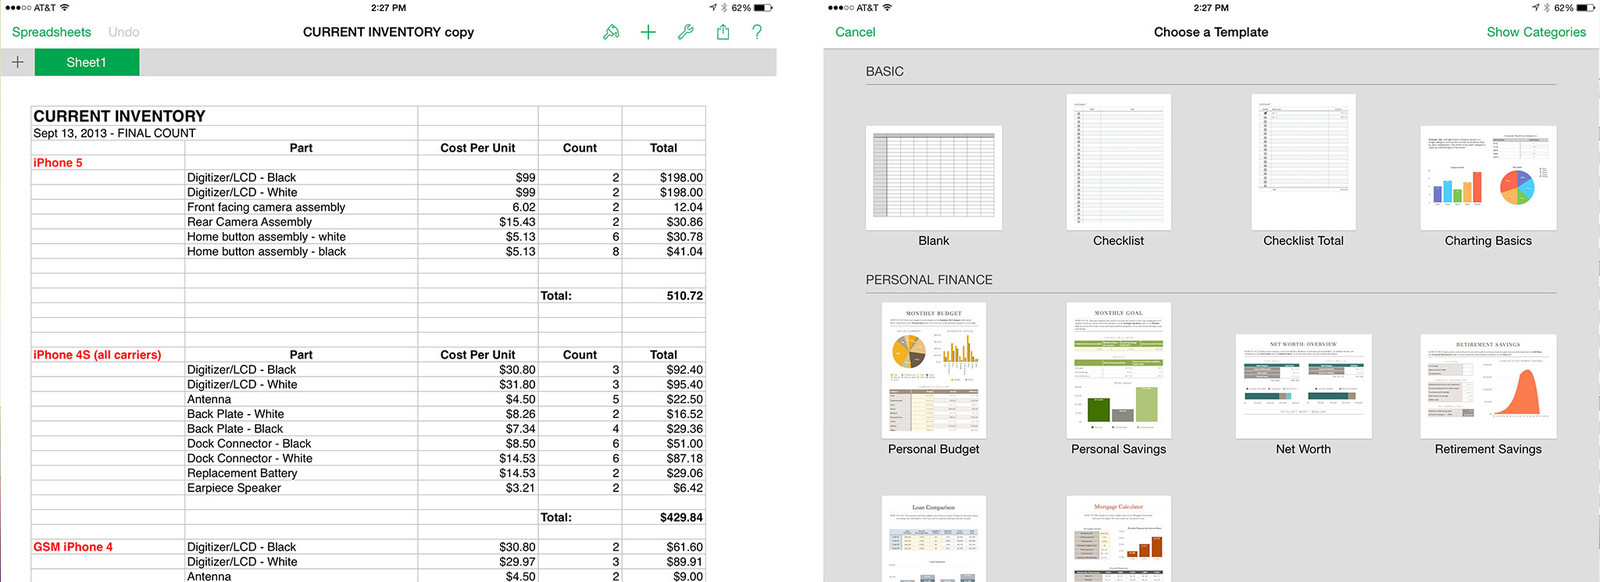 Best spreadsheet apps for iPad: Numbers, Google Drive, Microsoft